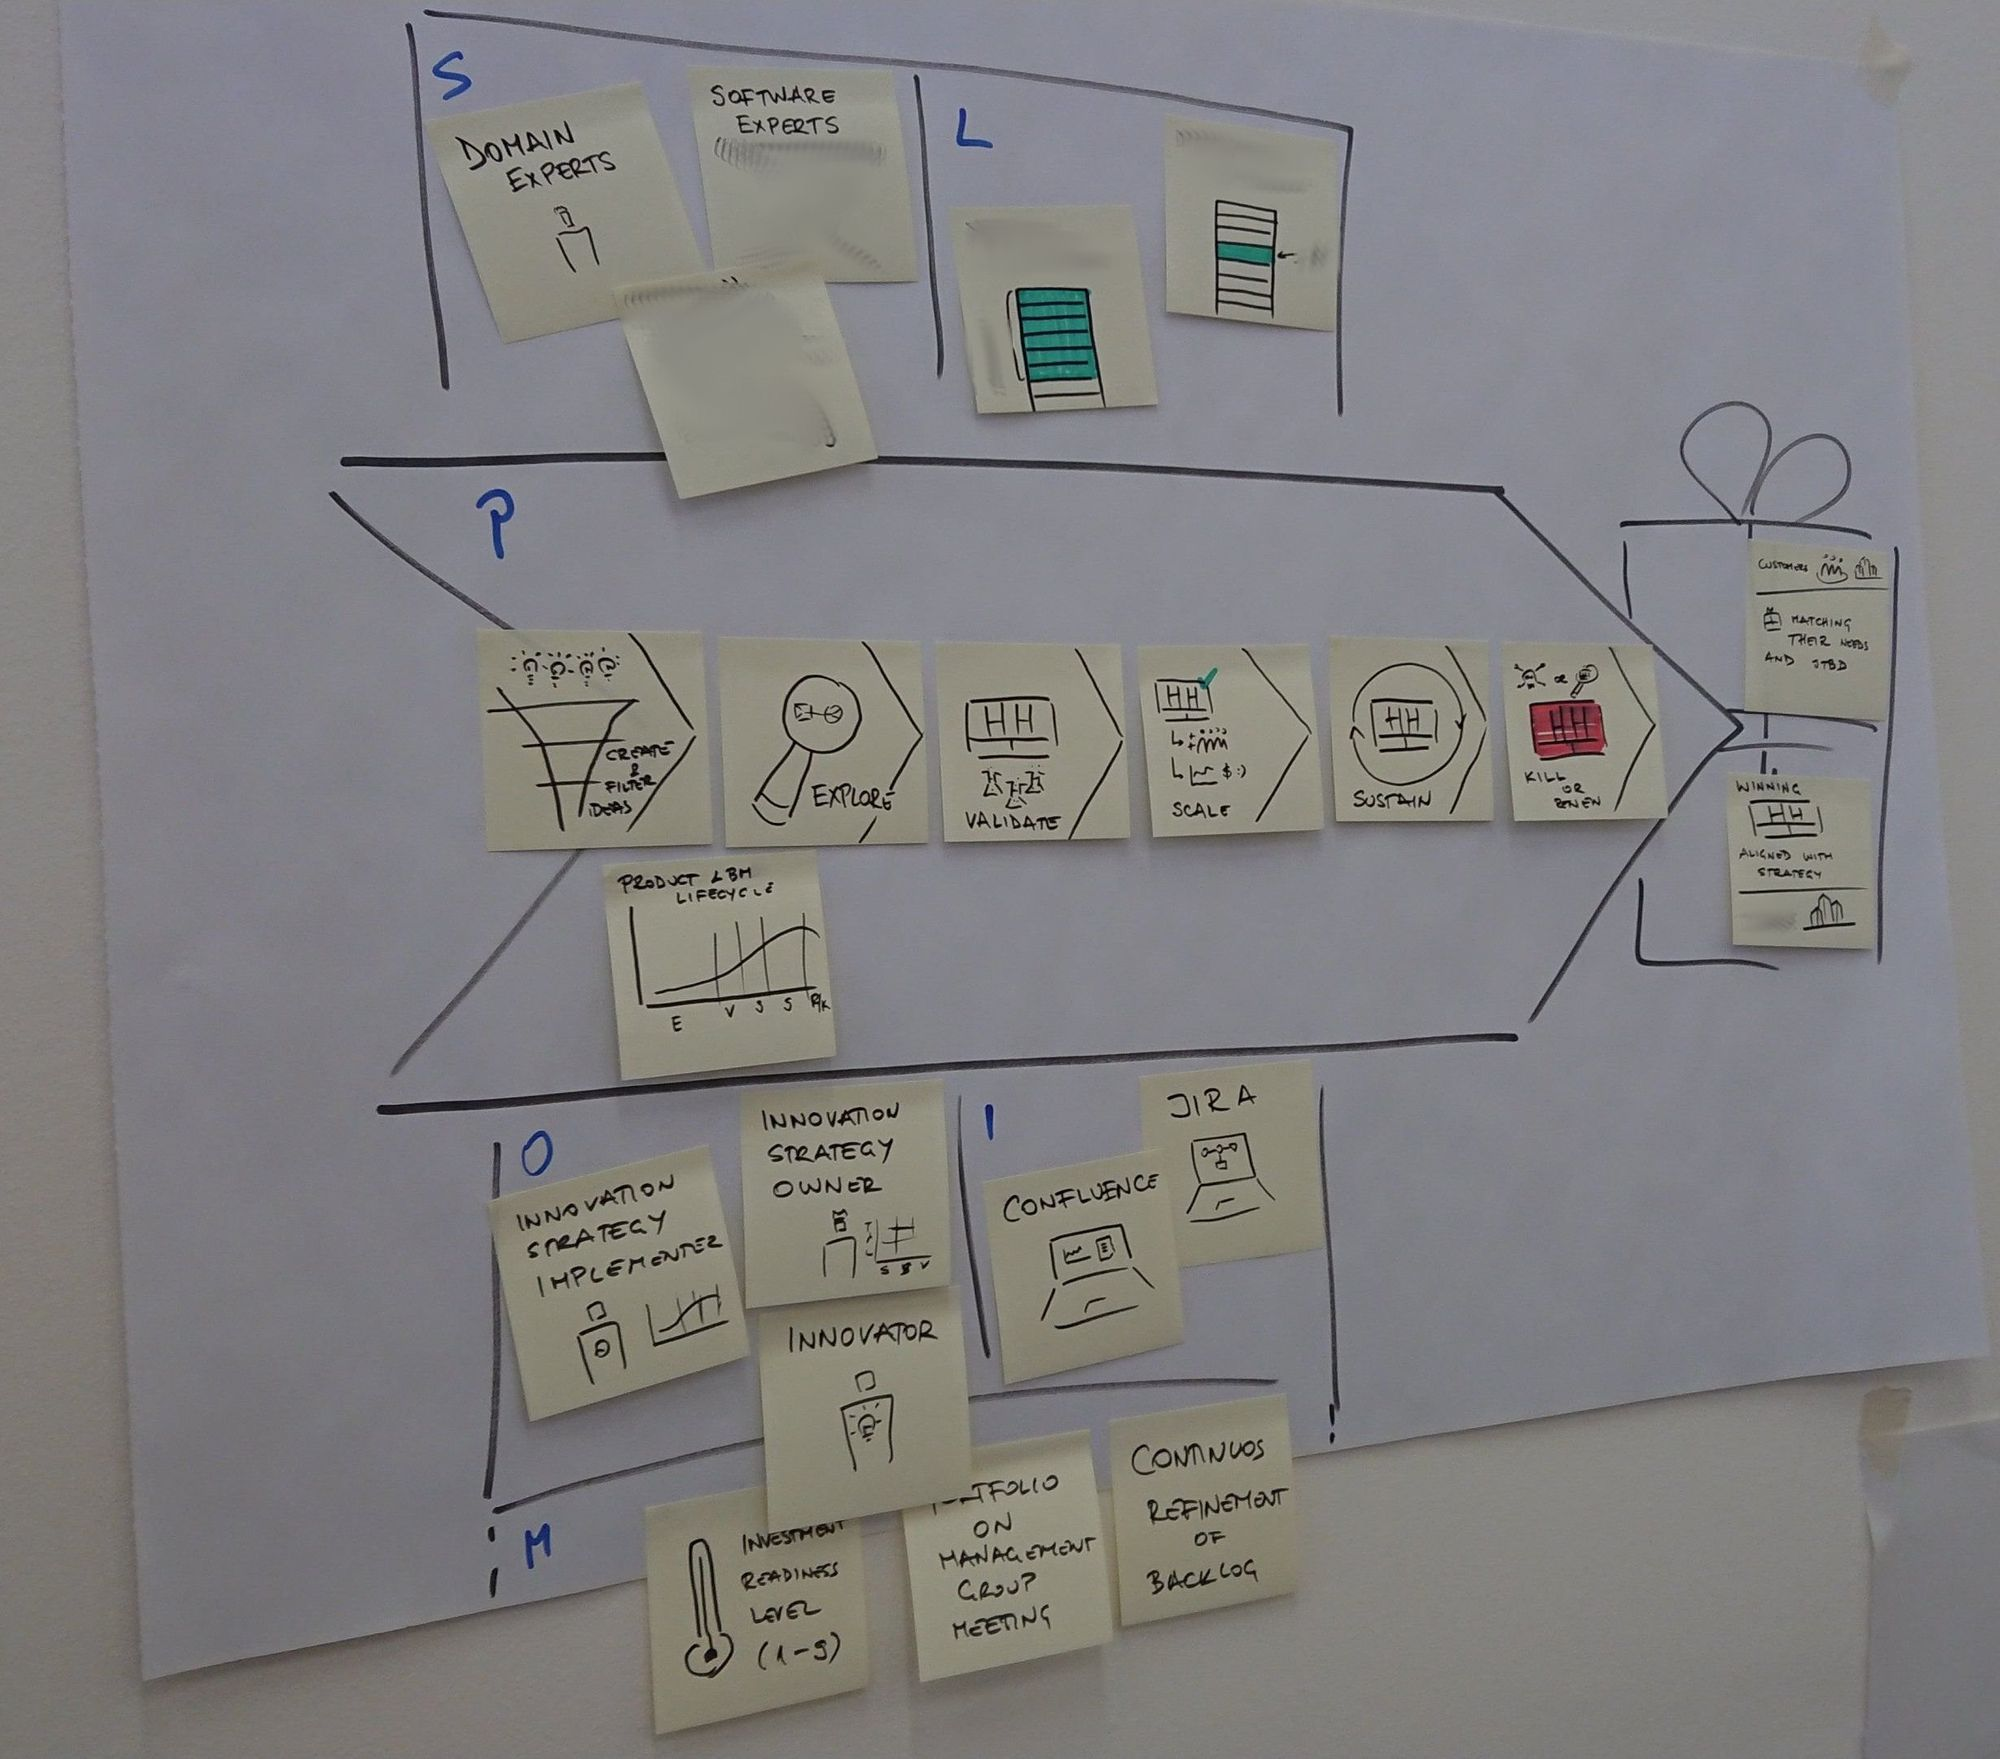 Meta-application of operating model canvas to map an operating model of innovation ecosystem.